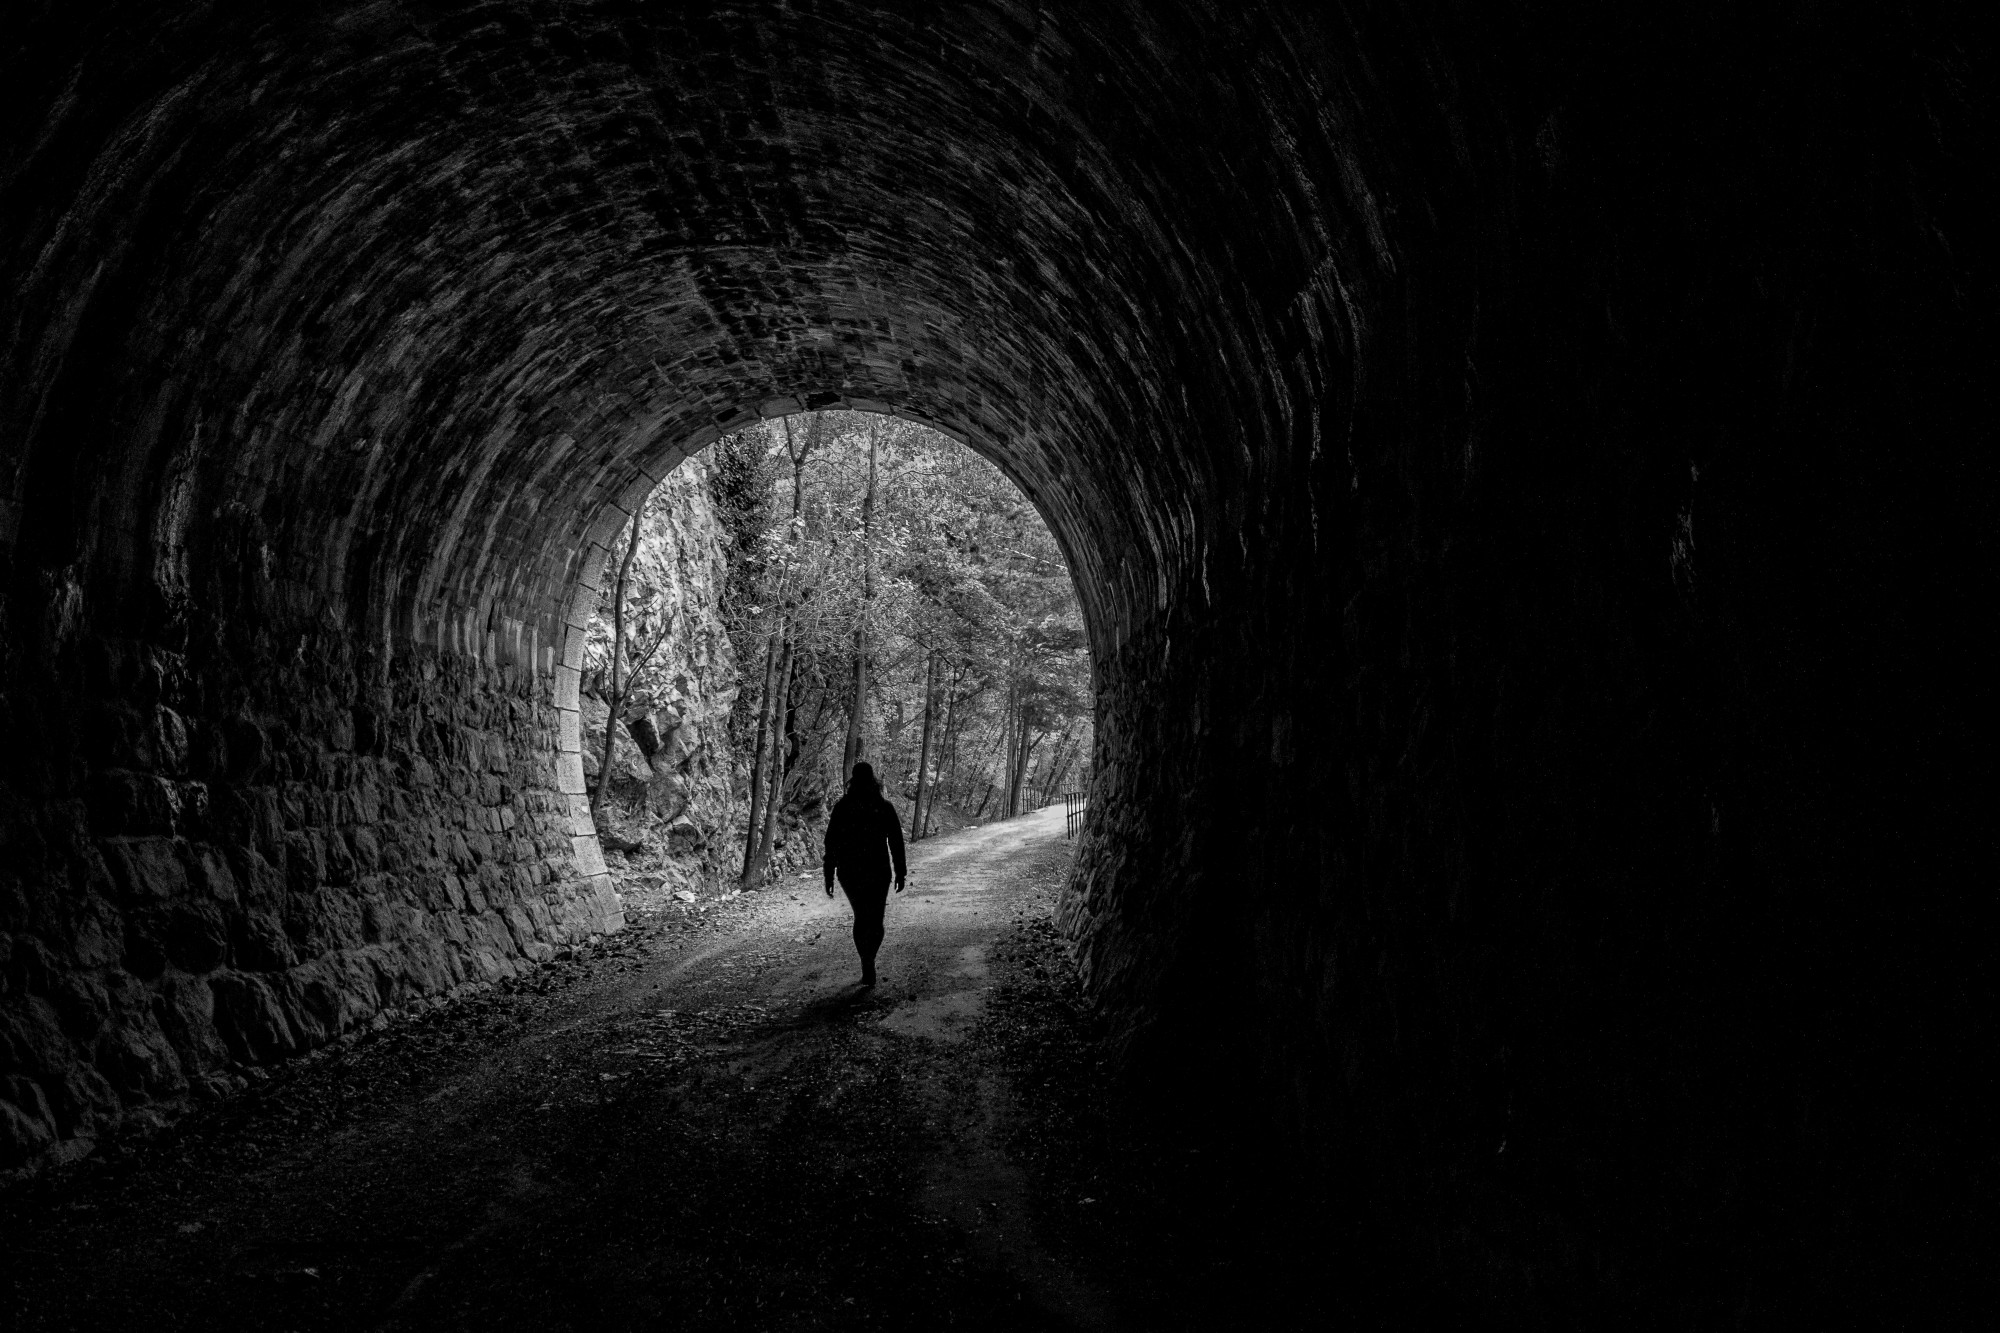 Sillouette of a person leaving a tunnel and walking into a forest.